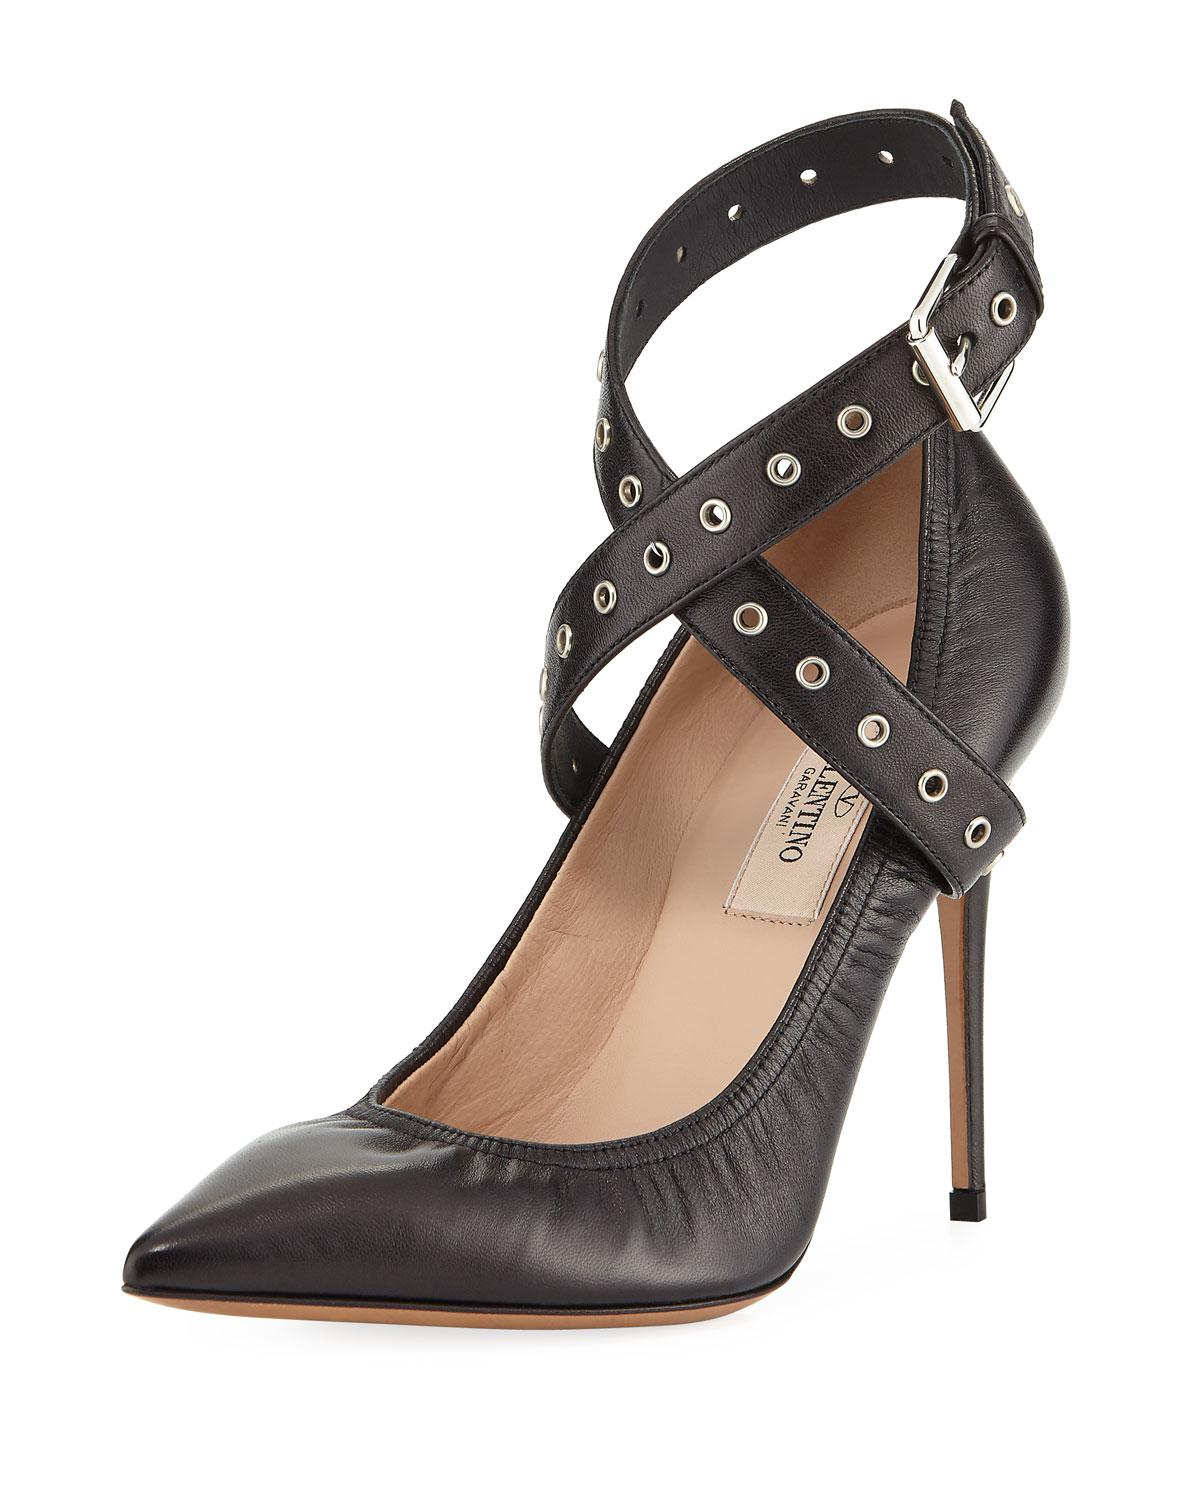 cheap newest Valentino Grommet Slingback Pumps original best store to get sale online low price cheap price amazon for sale miwNu8TS6